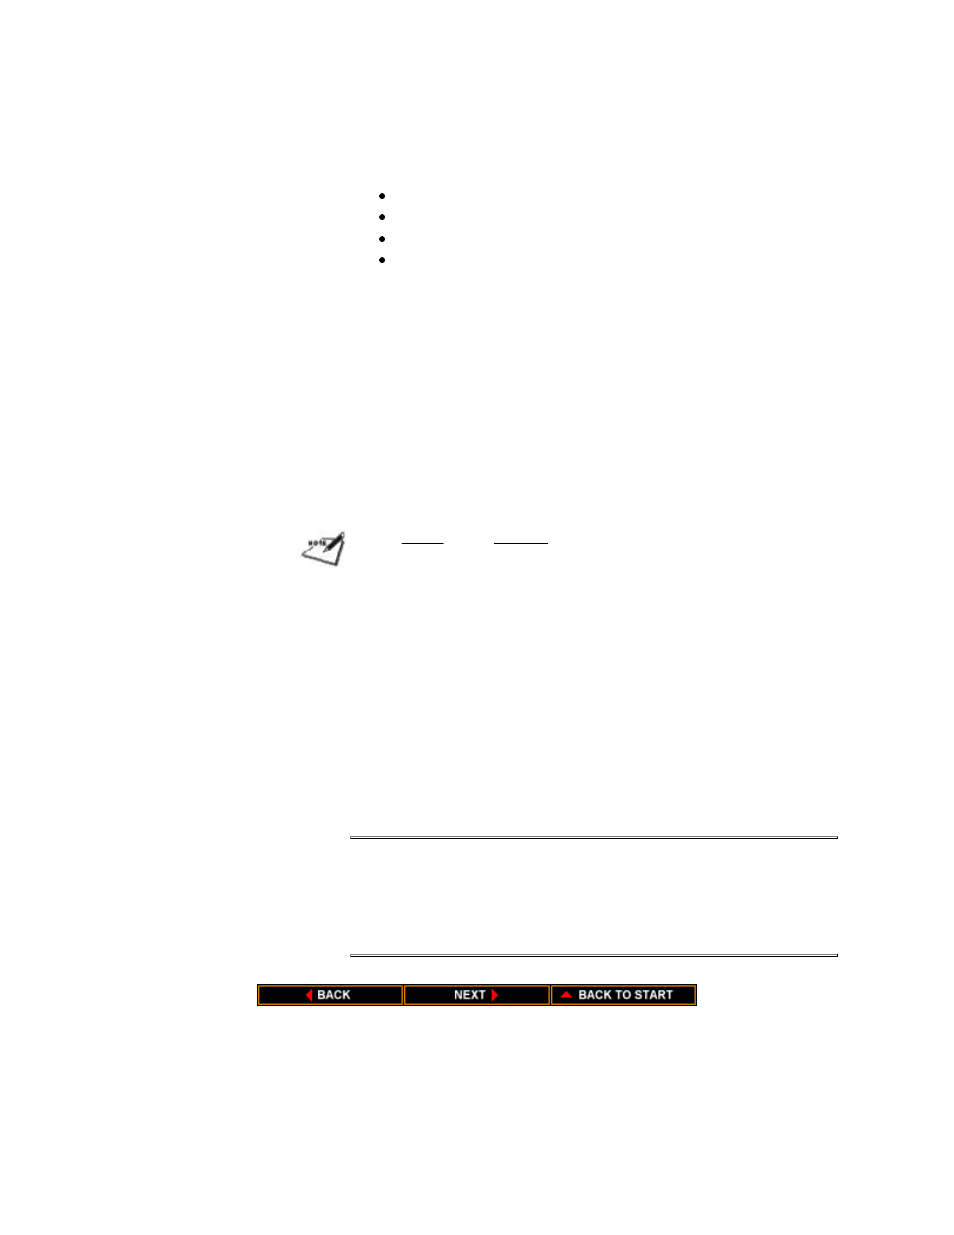 Bj-10e mode font styles, Selecting a font style | Canon BJ-10sx User Manual  | Page 40 / 127